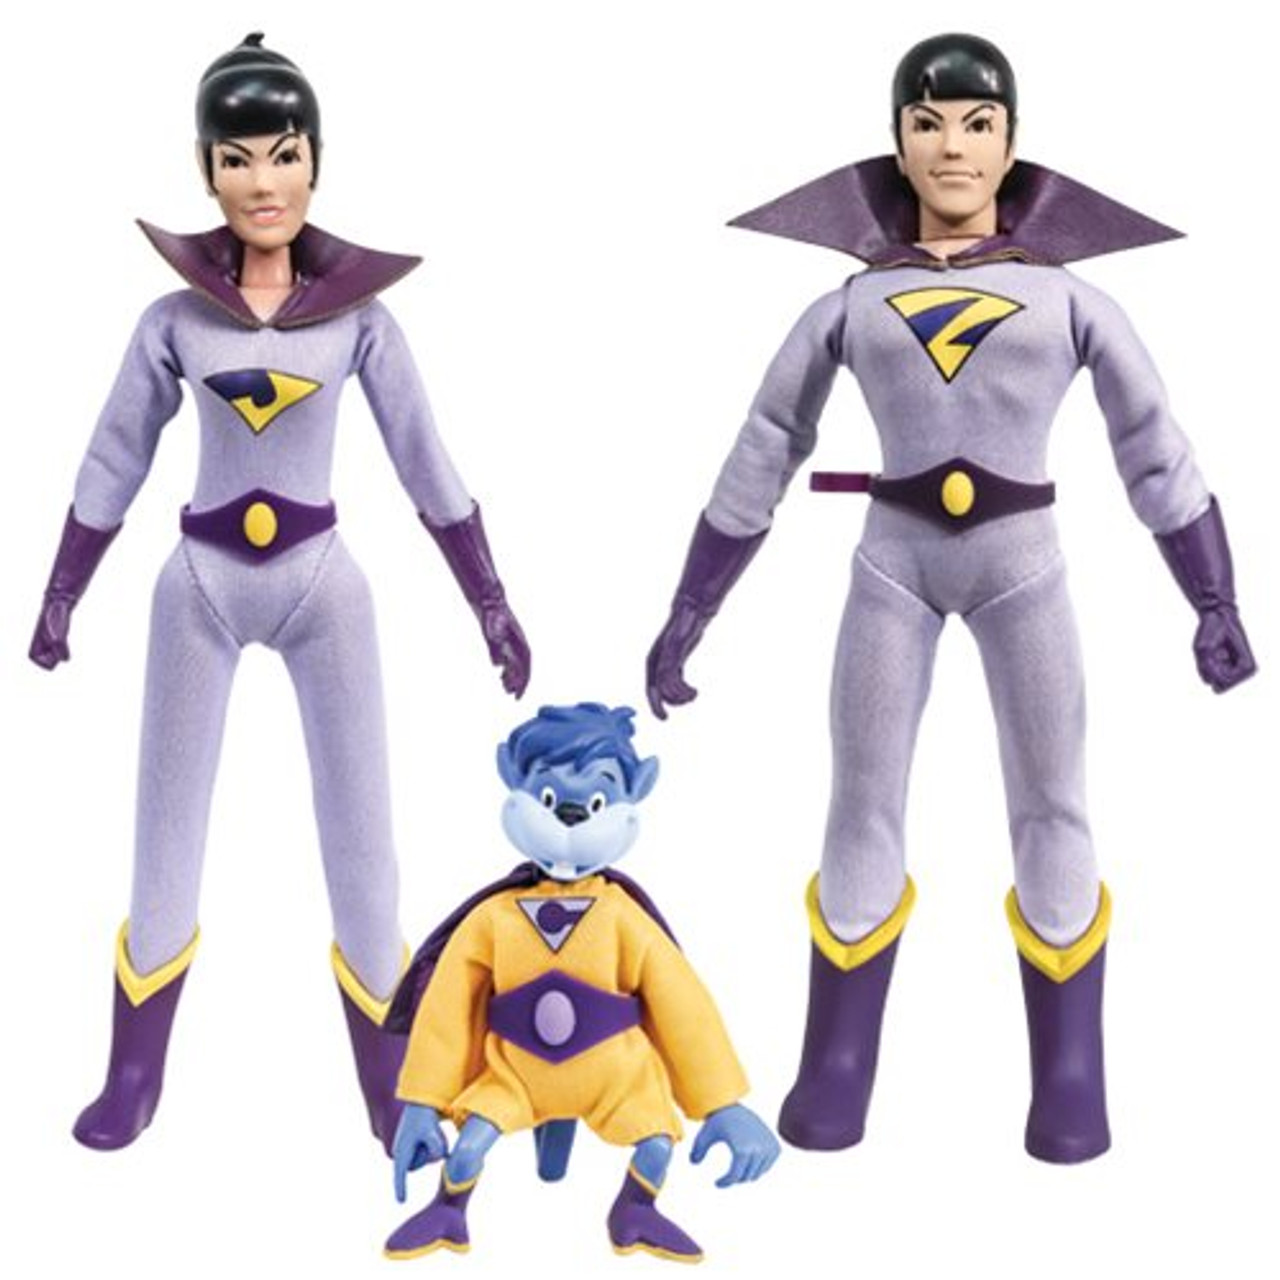 Super Friends 8 Inch Retro Style Action Figures Series 6 Set of all 4